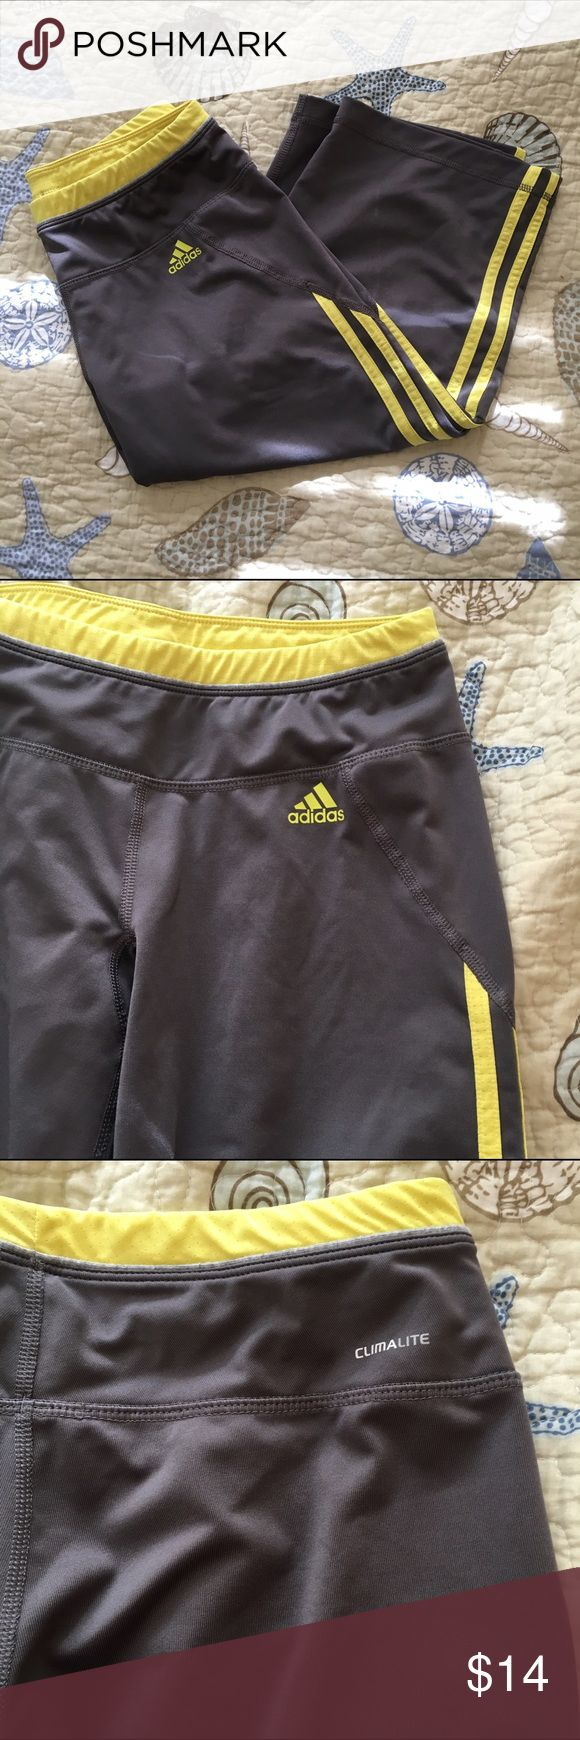 Adidas ClimaLite Workout Capris Adidas ClimaLite workout capris. Very comfortable and breathable. Adidas Pants Track Pants & Joggers